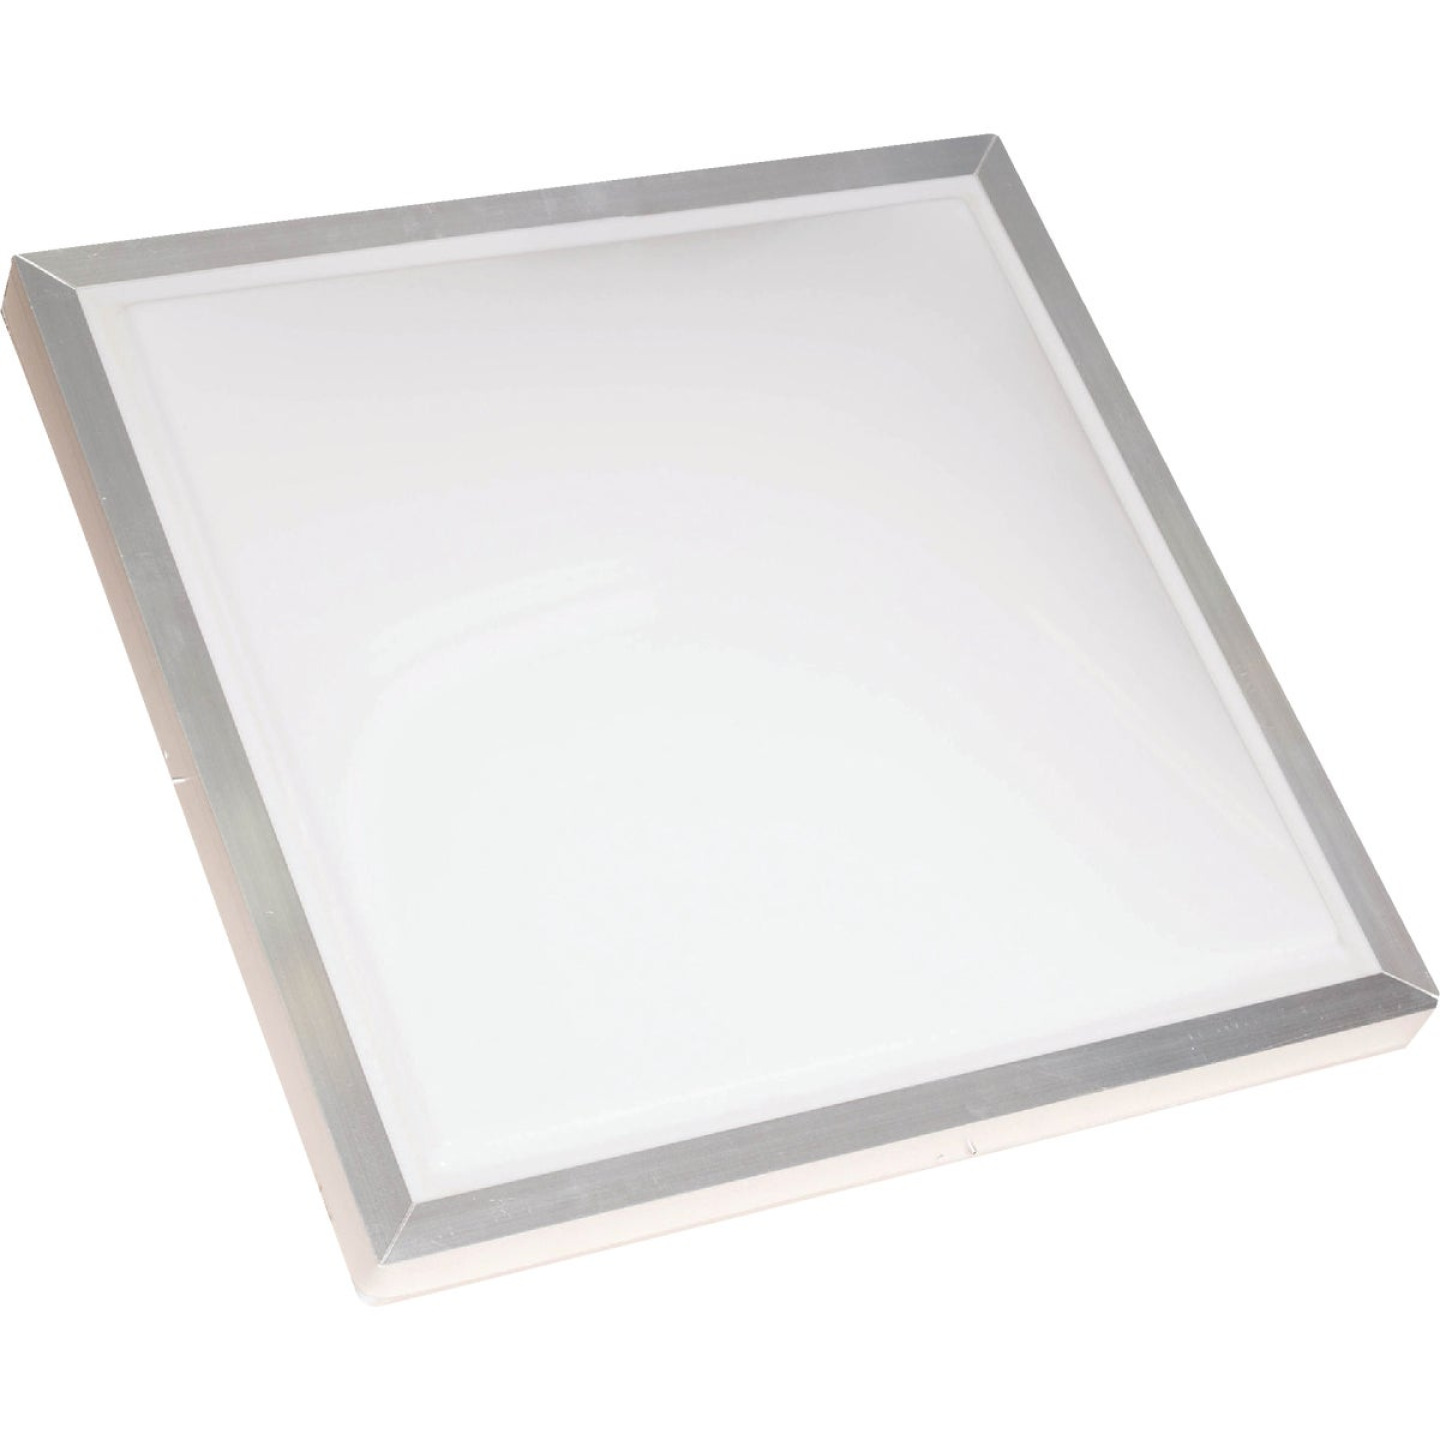 Kennedy Skylights 24 In. x 24 In. White Aluminum Frame Curb Mount Skylight Image 1